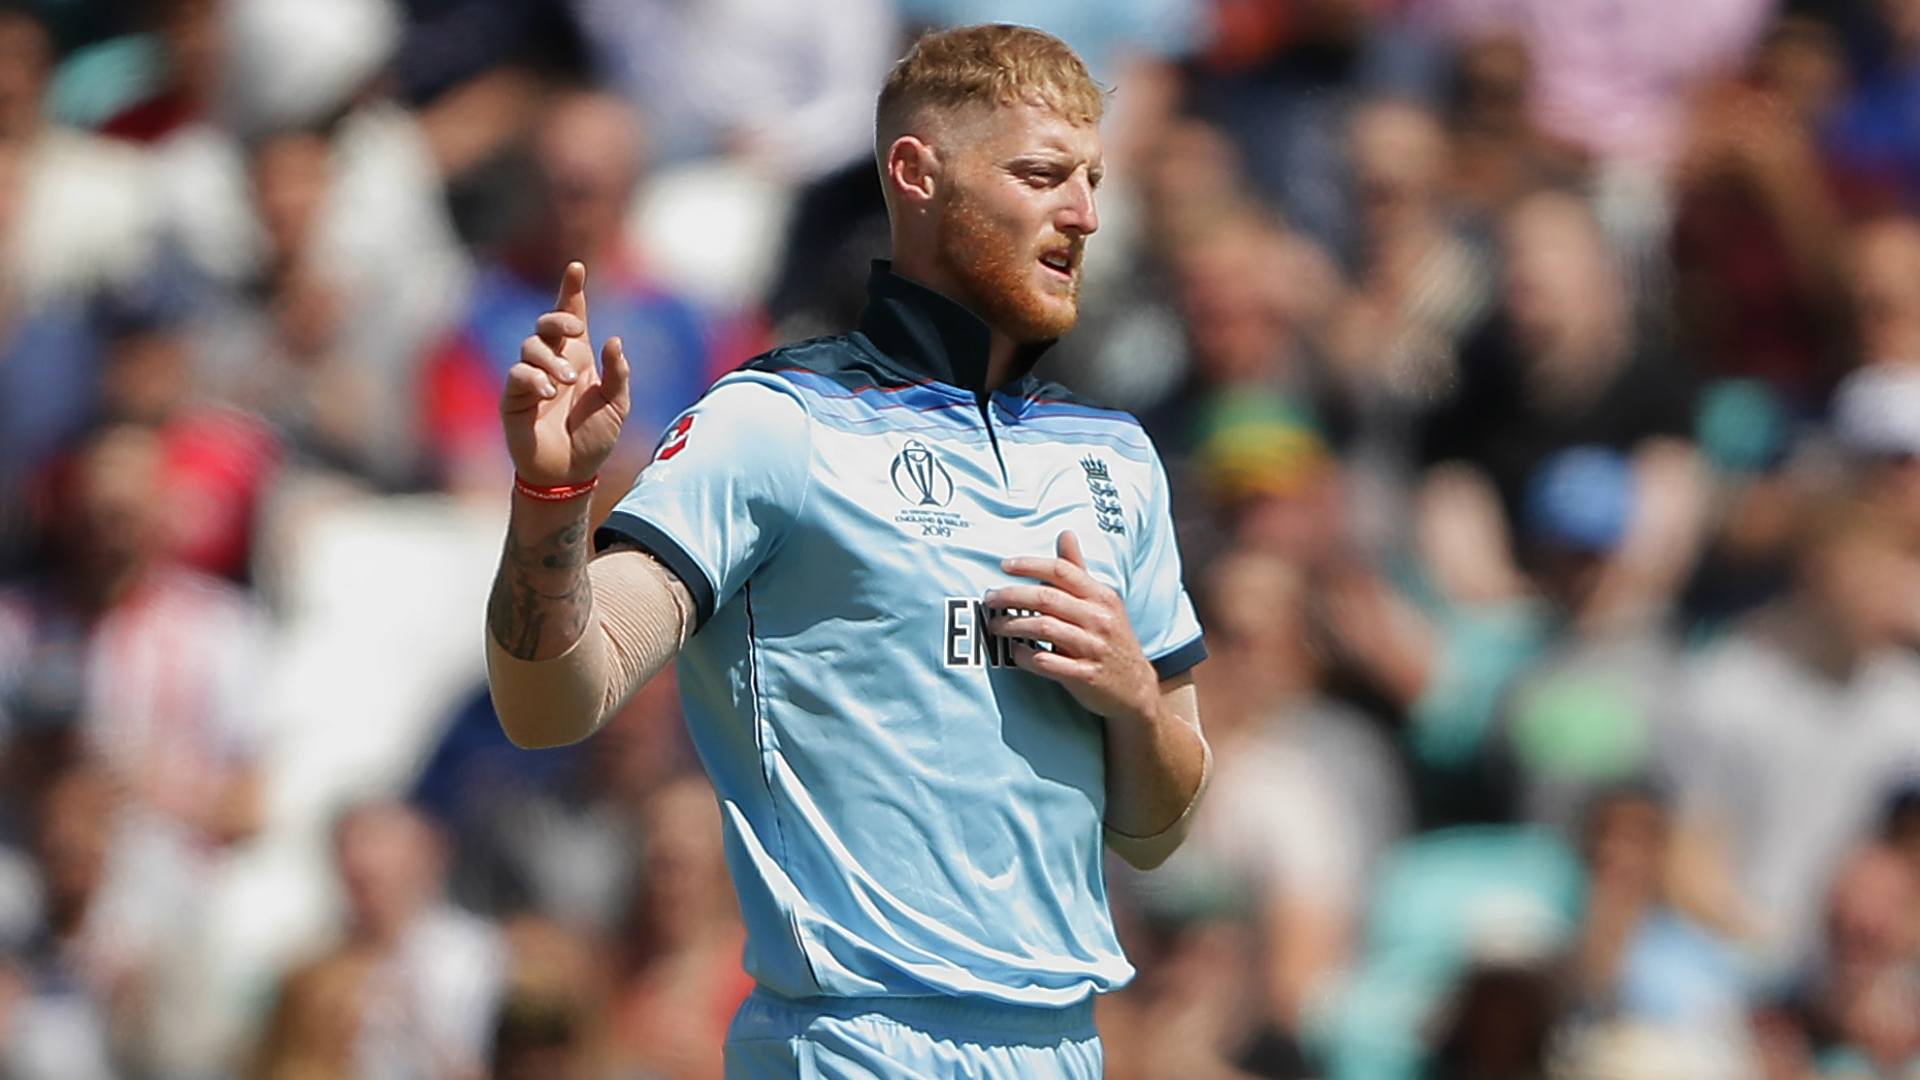 ENG vs SA, ICC Cricket World Cup Match 1, Key Players: Jonny Bairstow, Faf du Plessis, Ben Stokes And Other Cricketers to Watch Out for at The Oval